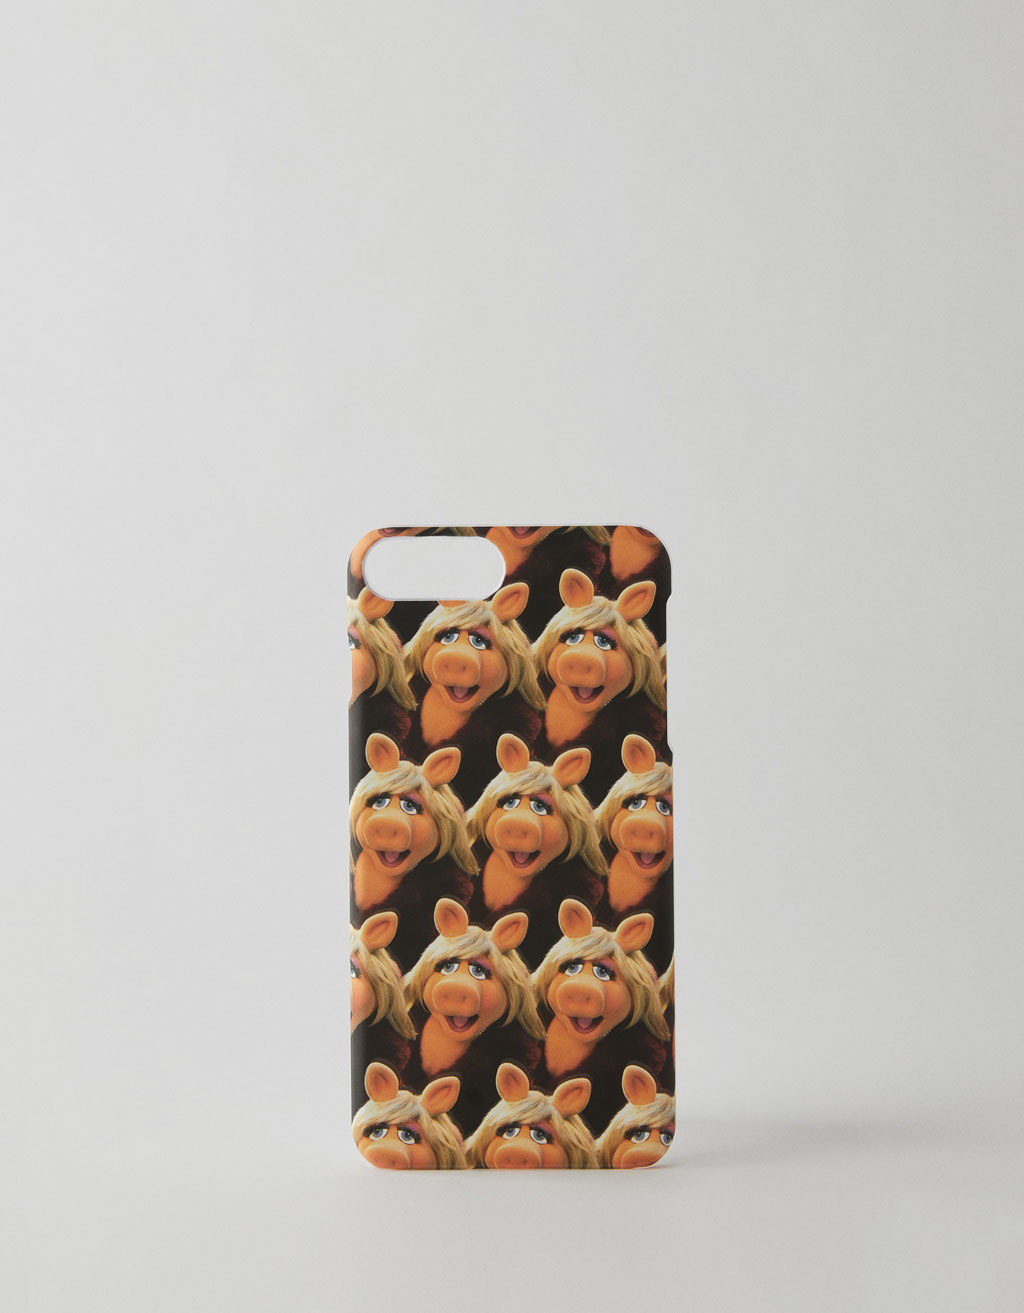 Muppets-Handyhülle Miss Piggy für iPhone 6 plus / 7 plus / 8 plus